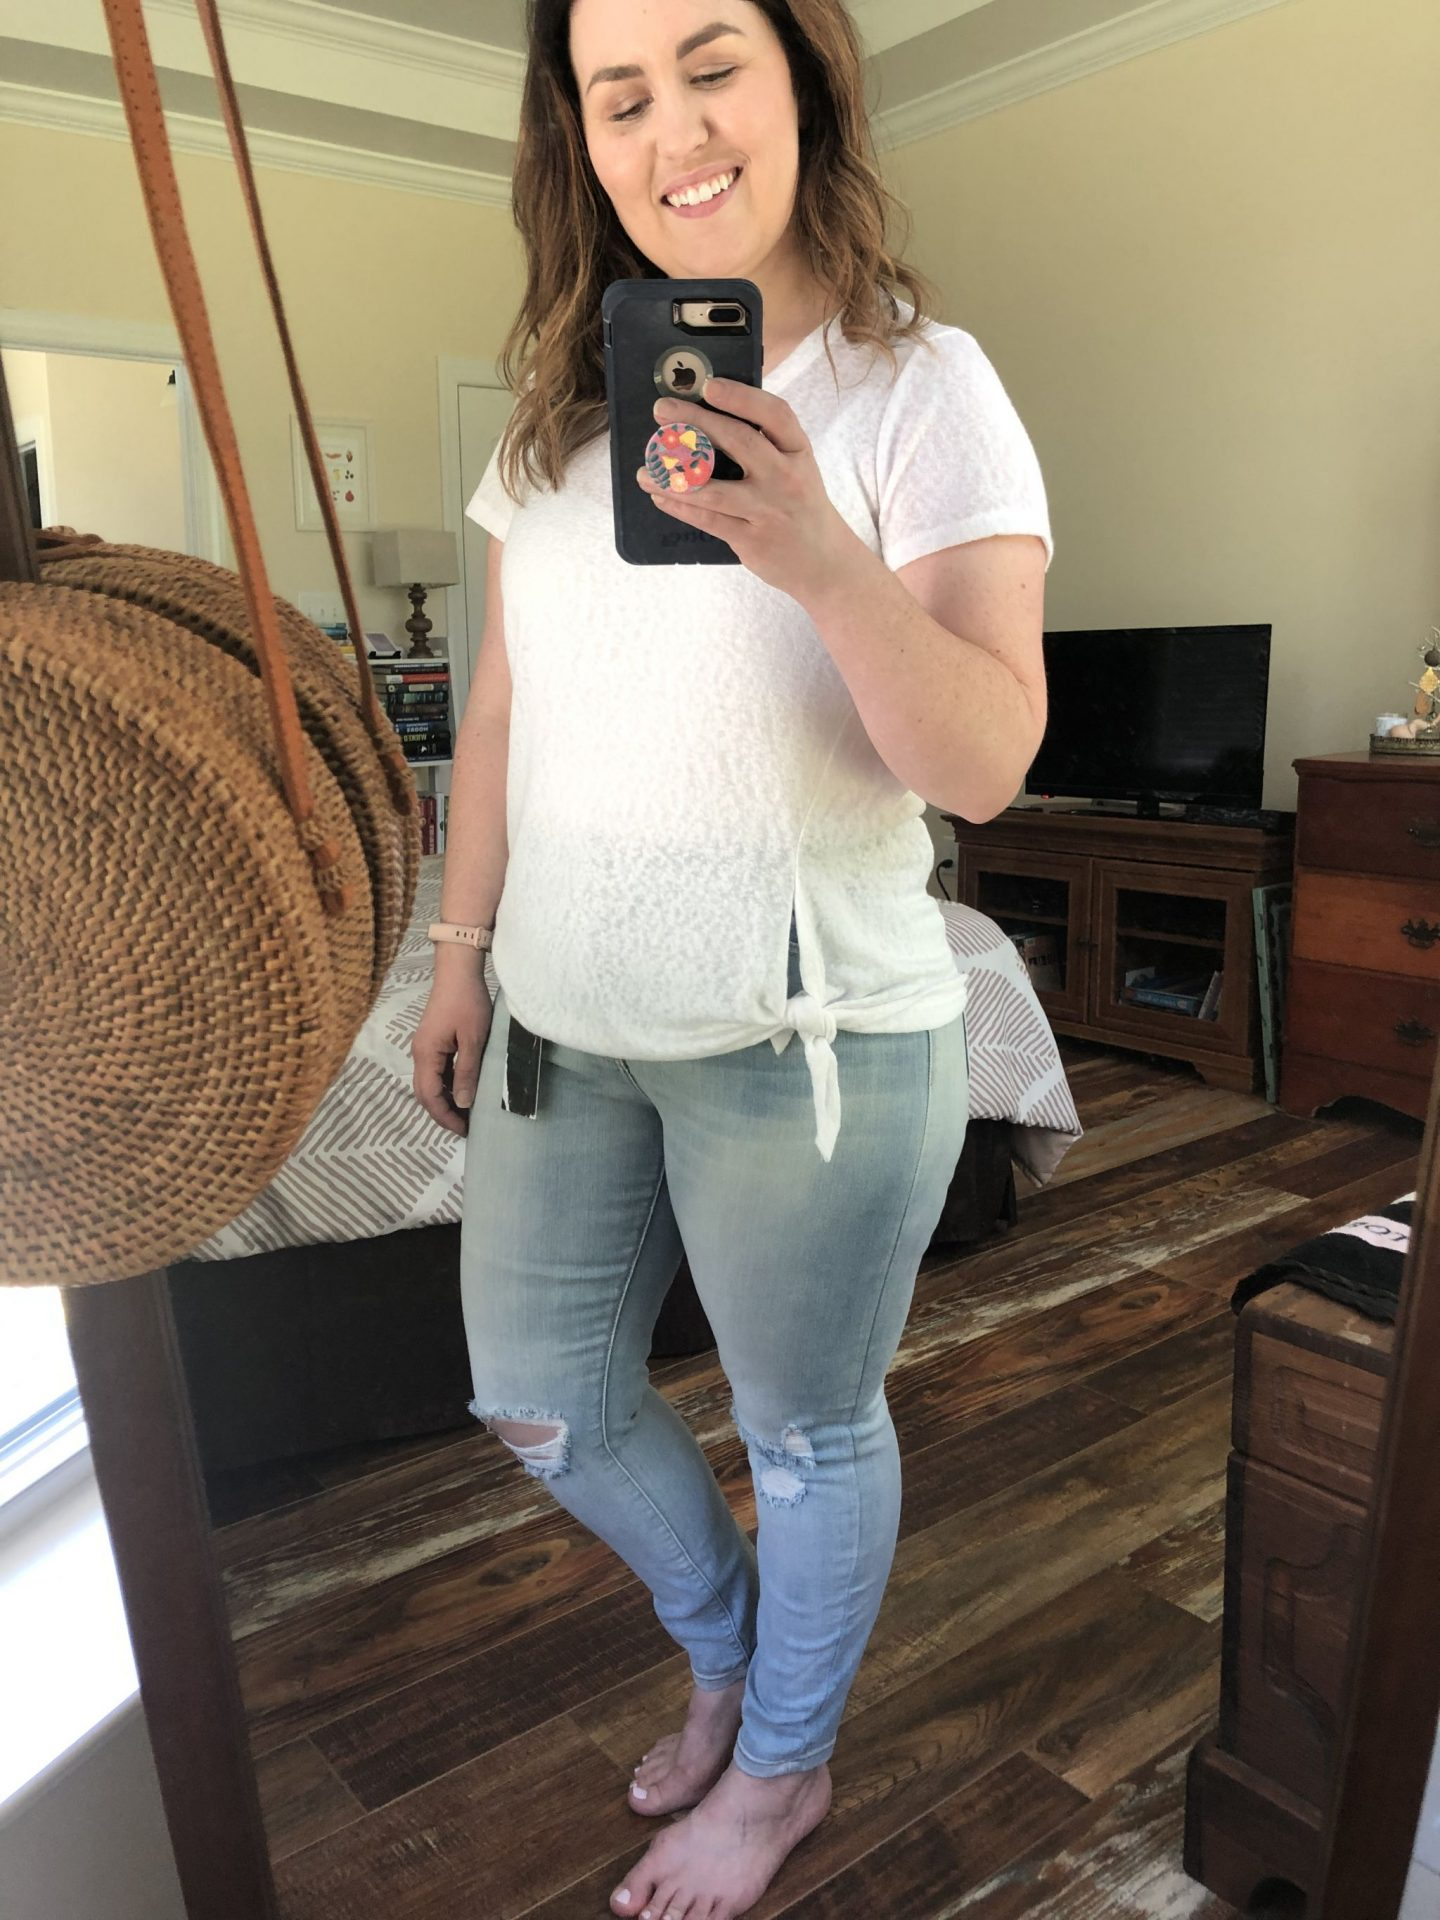 NC blogger Rebecca Lately shares her Stitch Fix Denim outfits. She requested a box of denim jeans & is sharing what she got, kept & sent back!